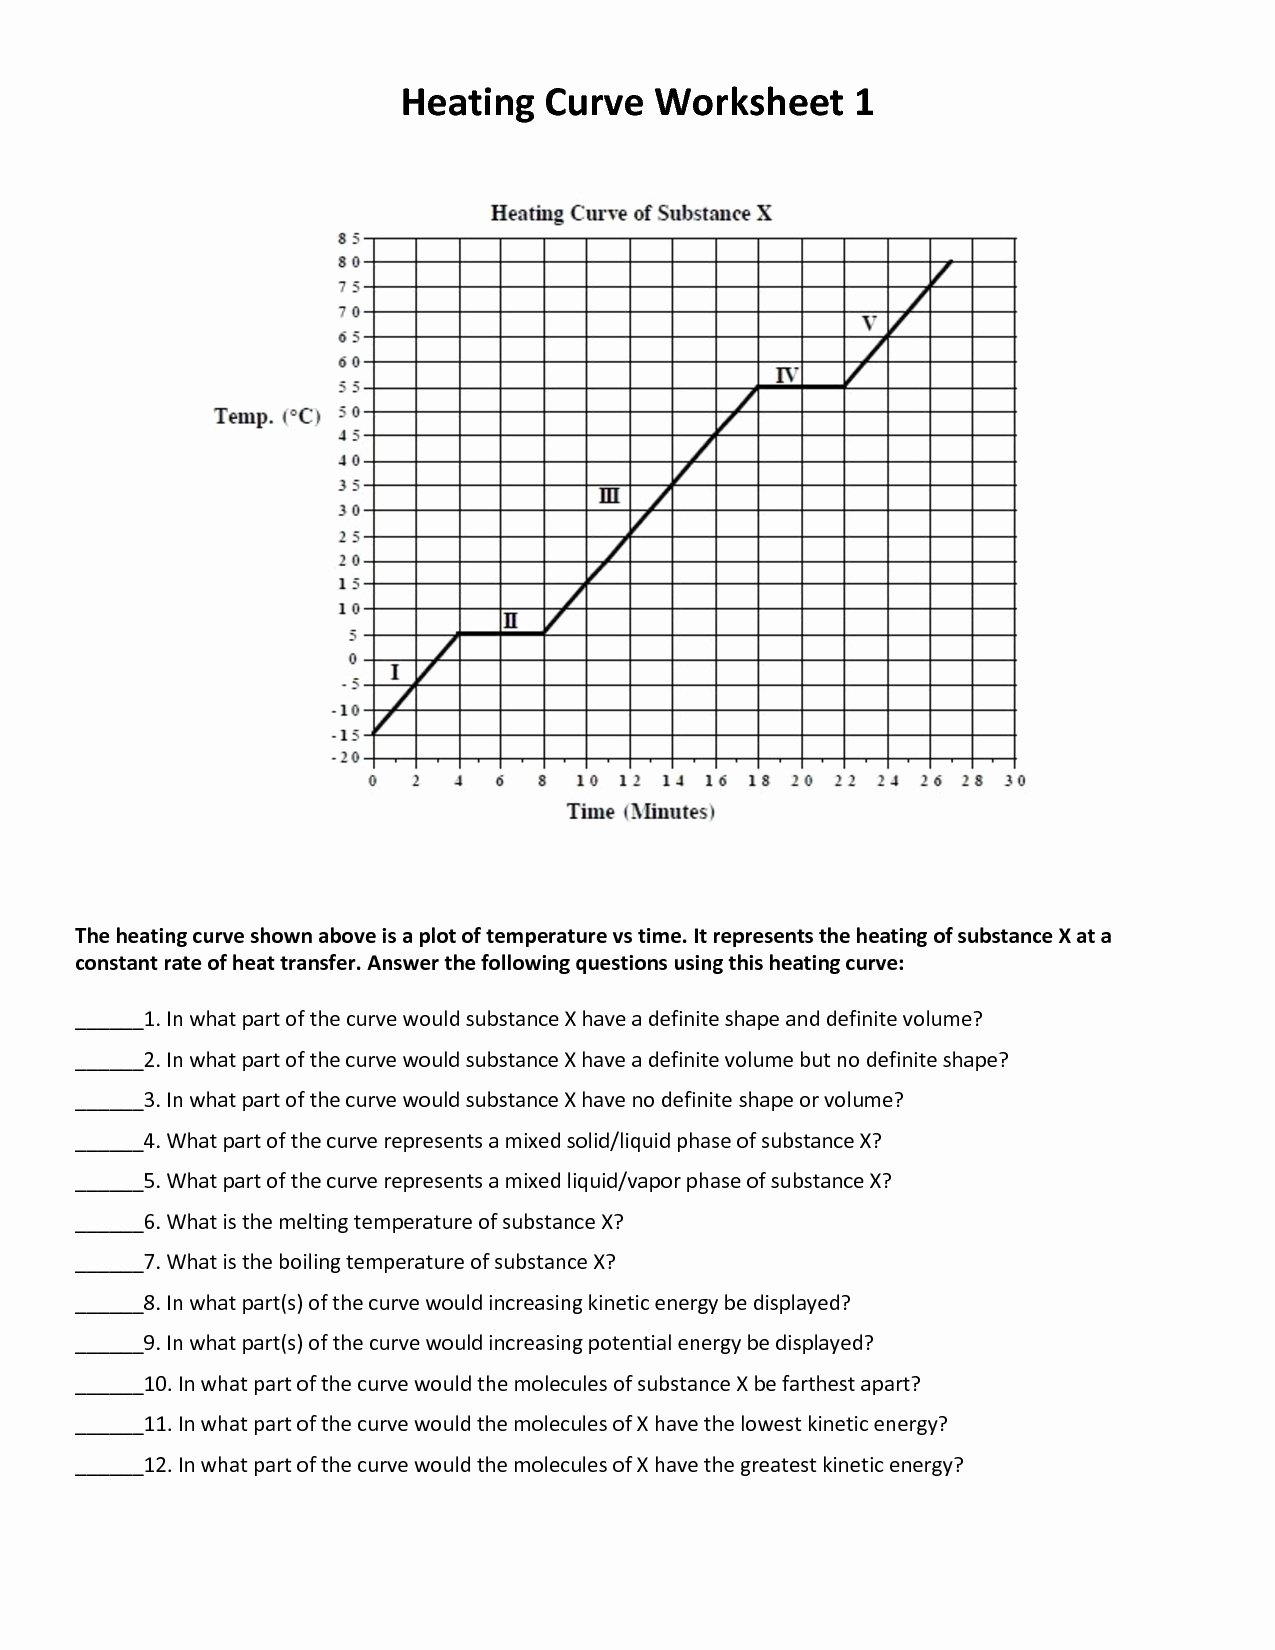 Heating and Cooling Curves Worksheet Lovely Titration Curves Worksheet Answers